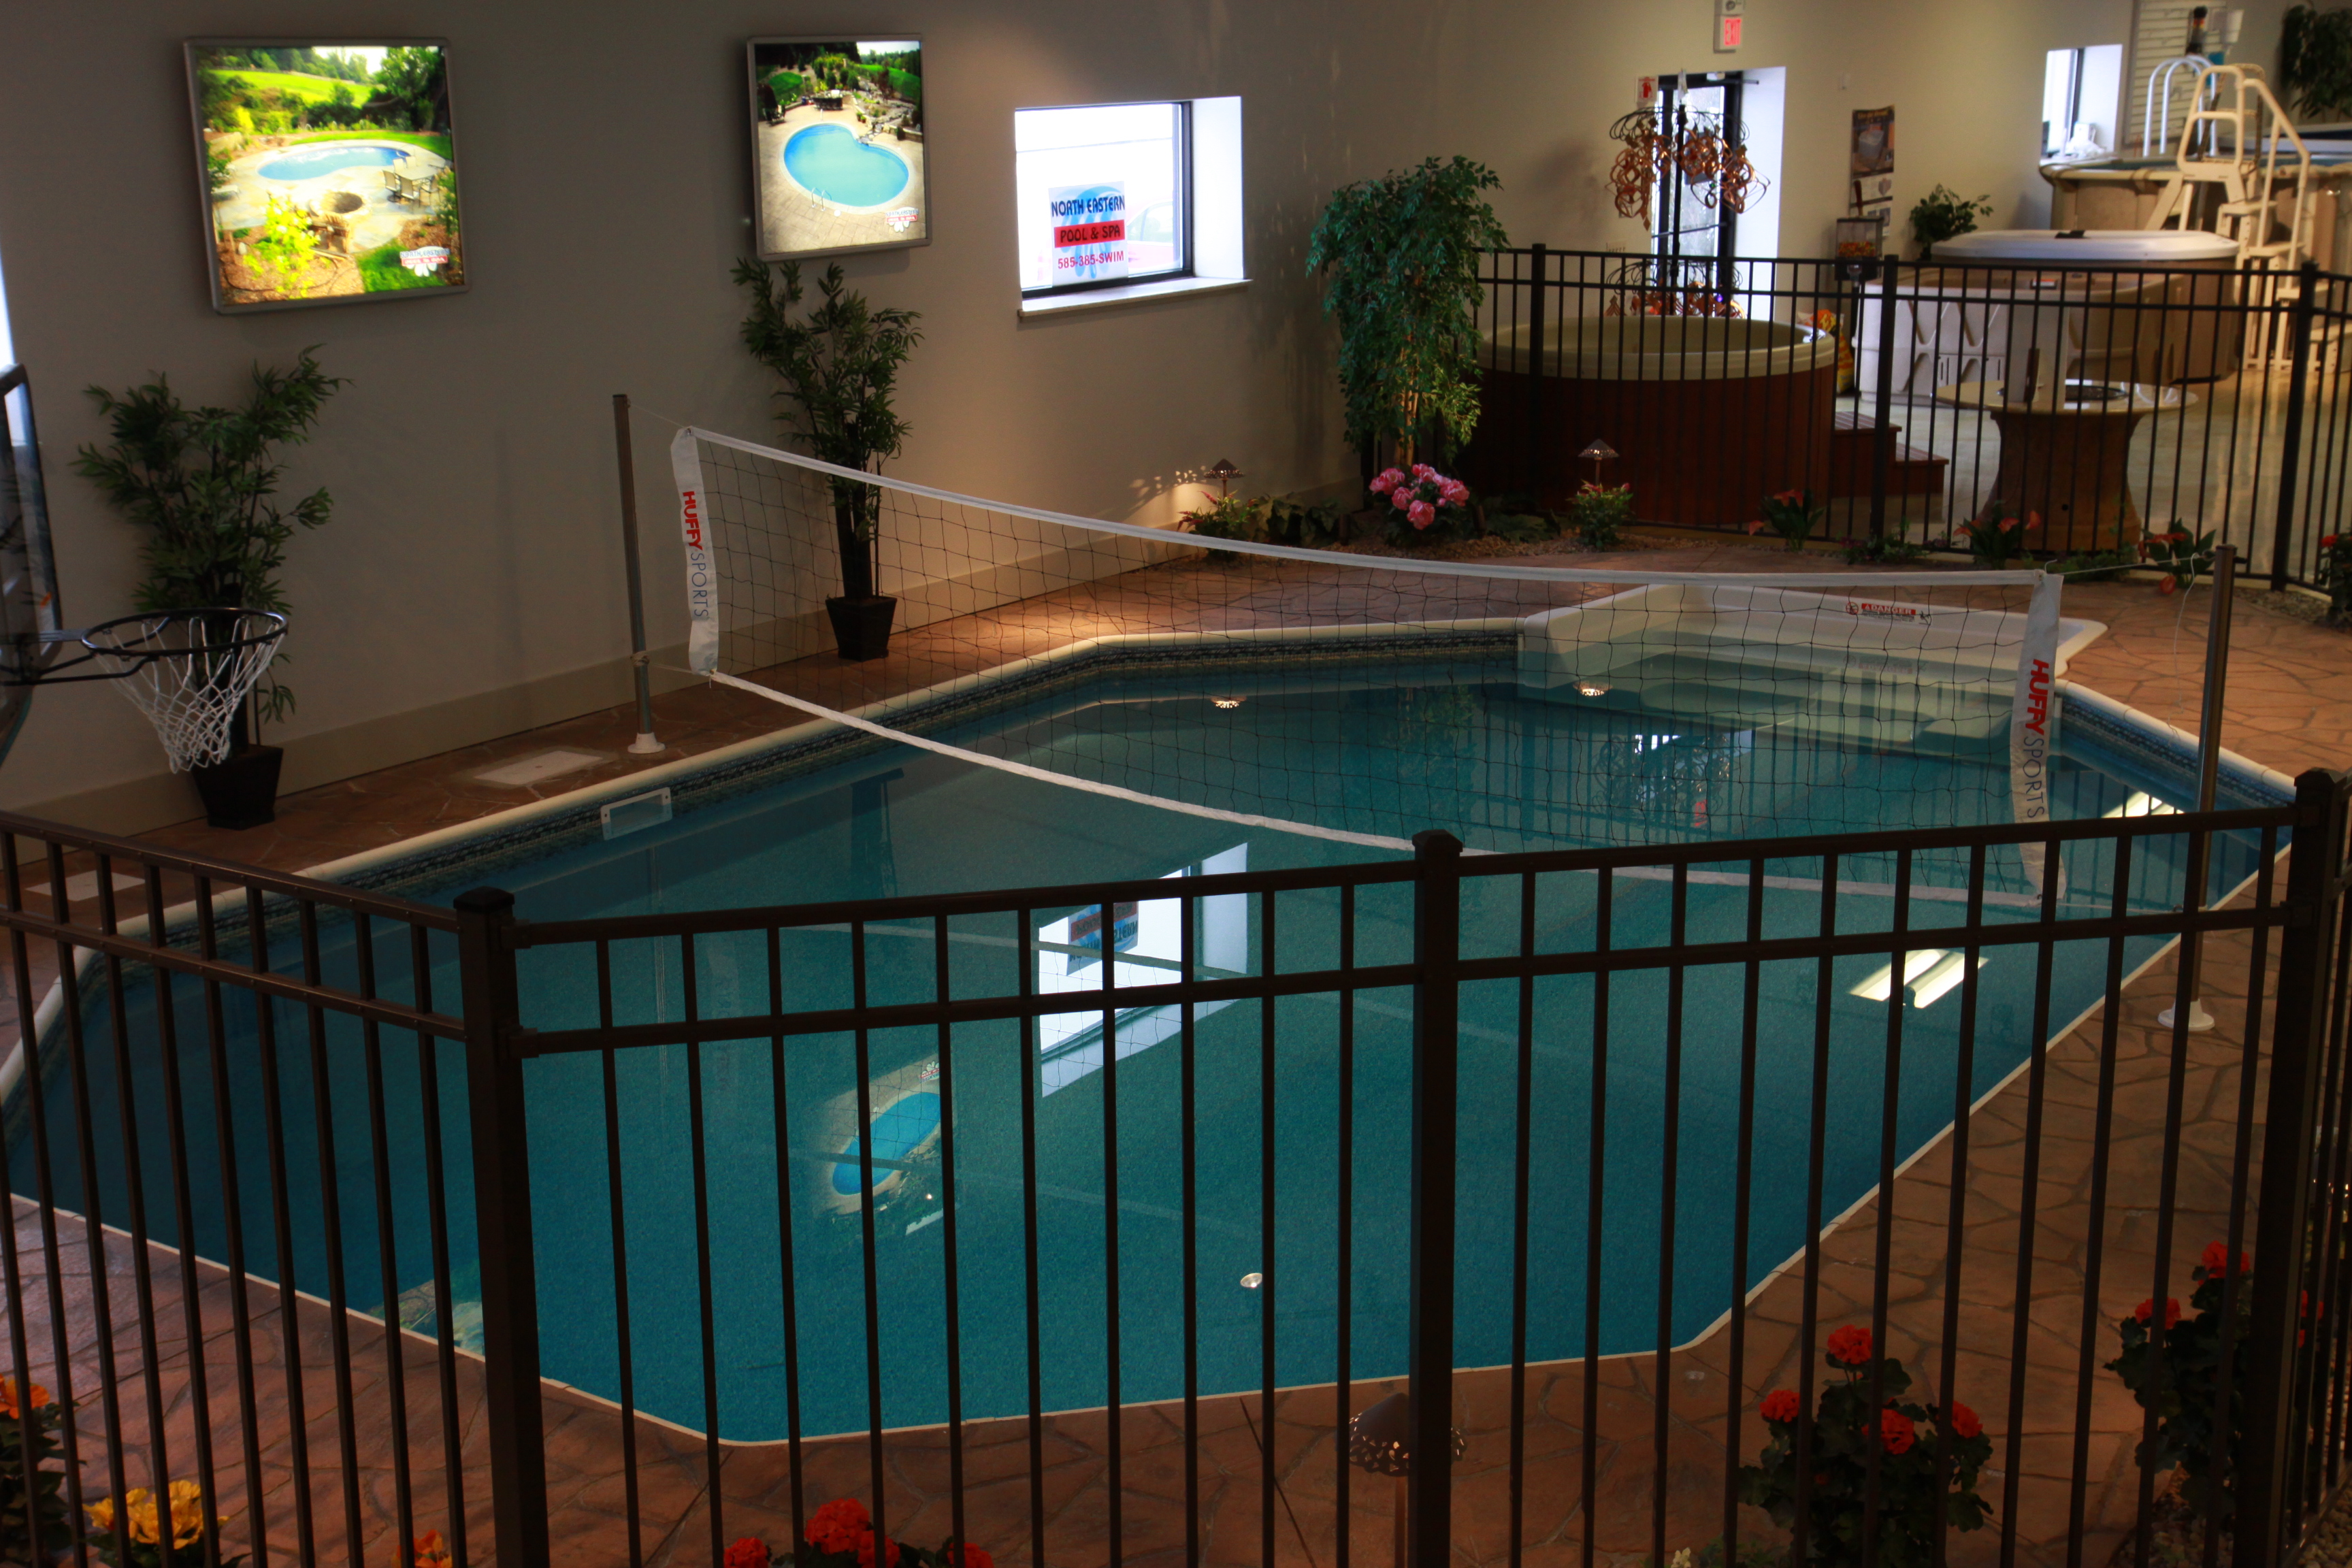 Northeastern Pool And Spa East Rochester Ny